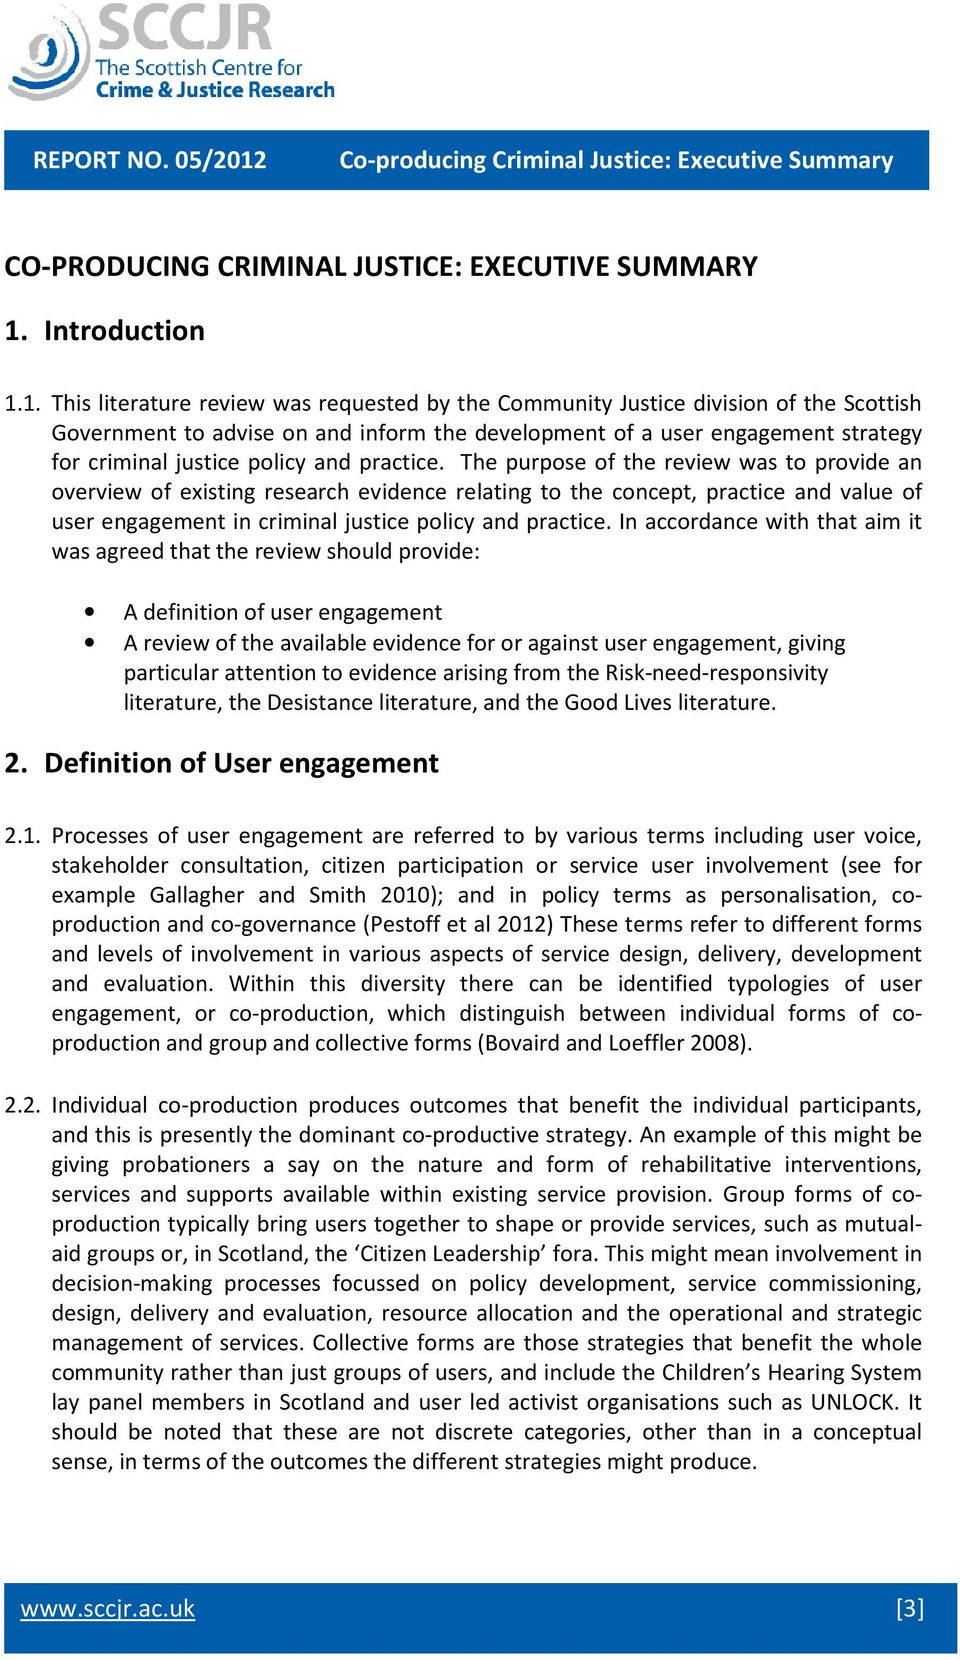 1. This literature review was requested by the Community Justice division of the Scottish Government to advise on and inform the development of a user engagement strategy for criminal justice policy